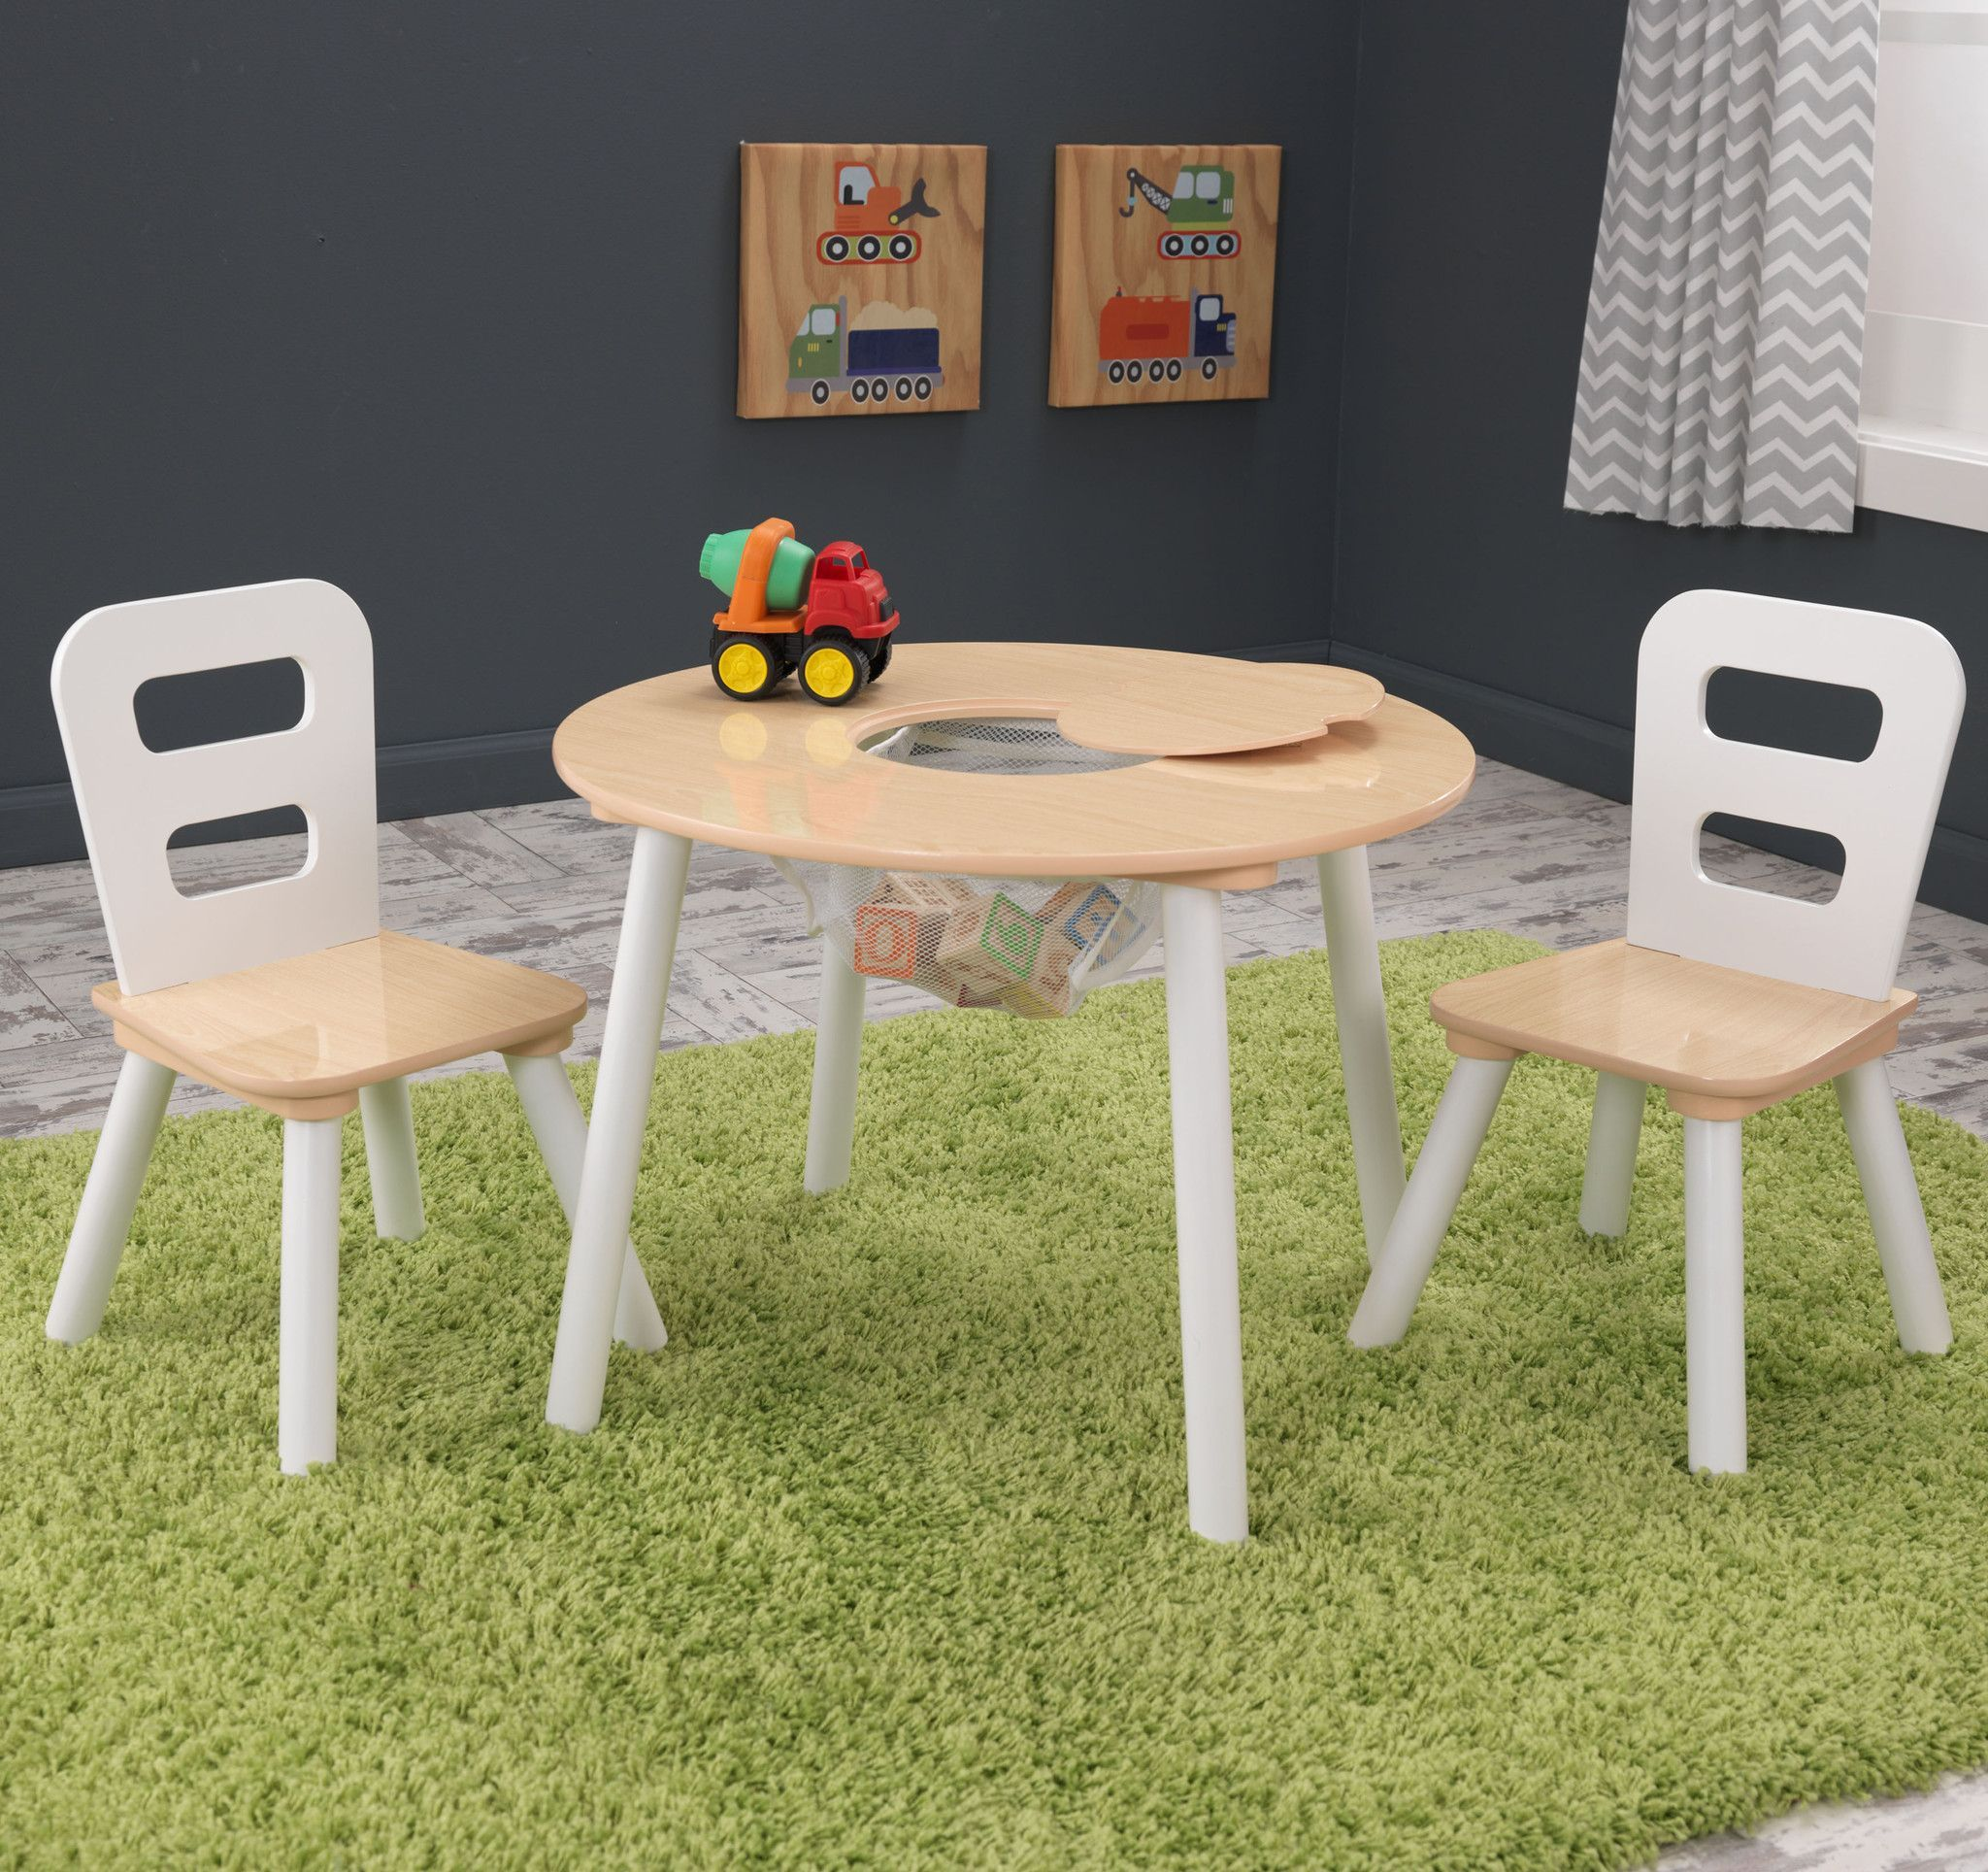 Kidkraft Round Table And 2 Chair Set Whitenatural.Kid Kraft Round Table 2 Chair Set White Natural 27027